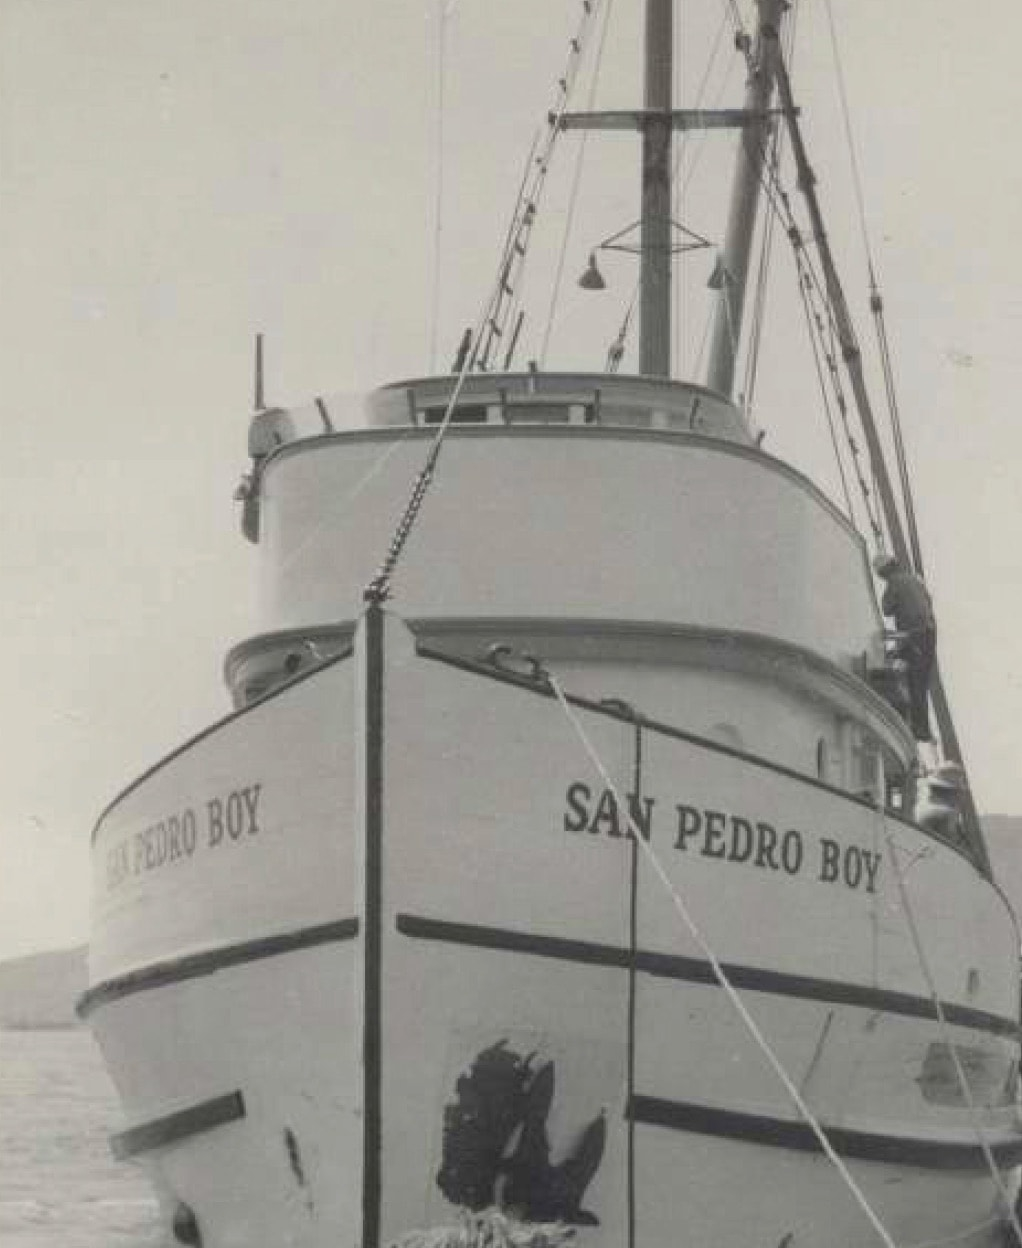 Photo of Fishing boat San Pedro Boy. (photos: courtesy Los Angeles Maritime Museum. Gift of the Iacono family)